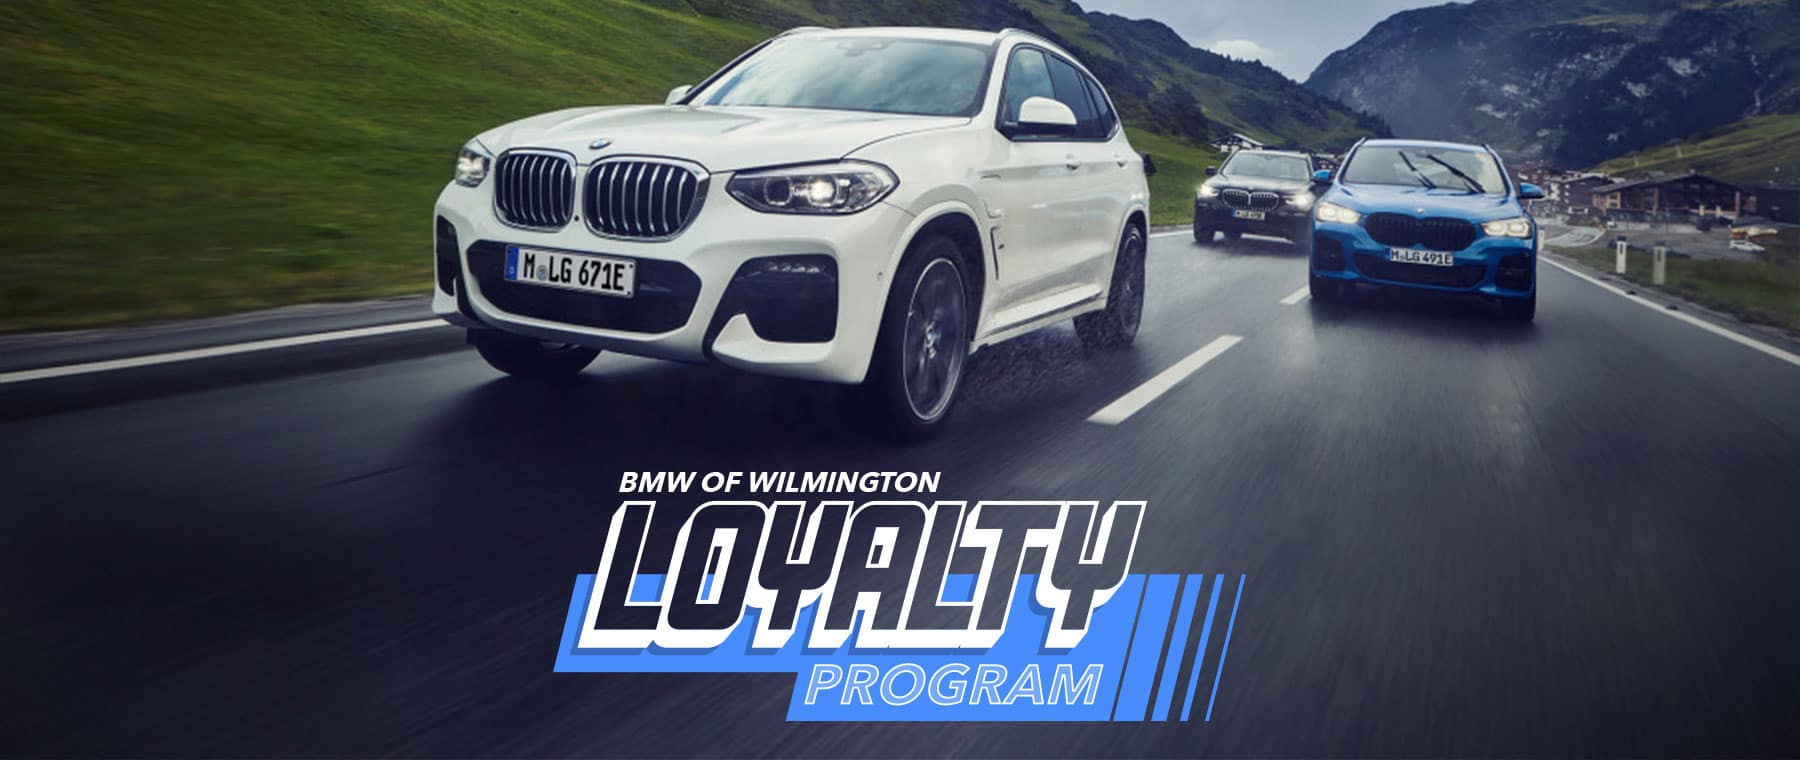 bmw wilmington loyalty upgradep rogram special banner